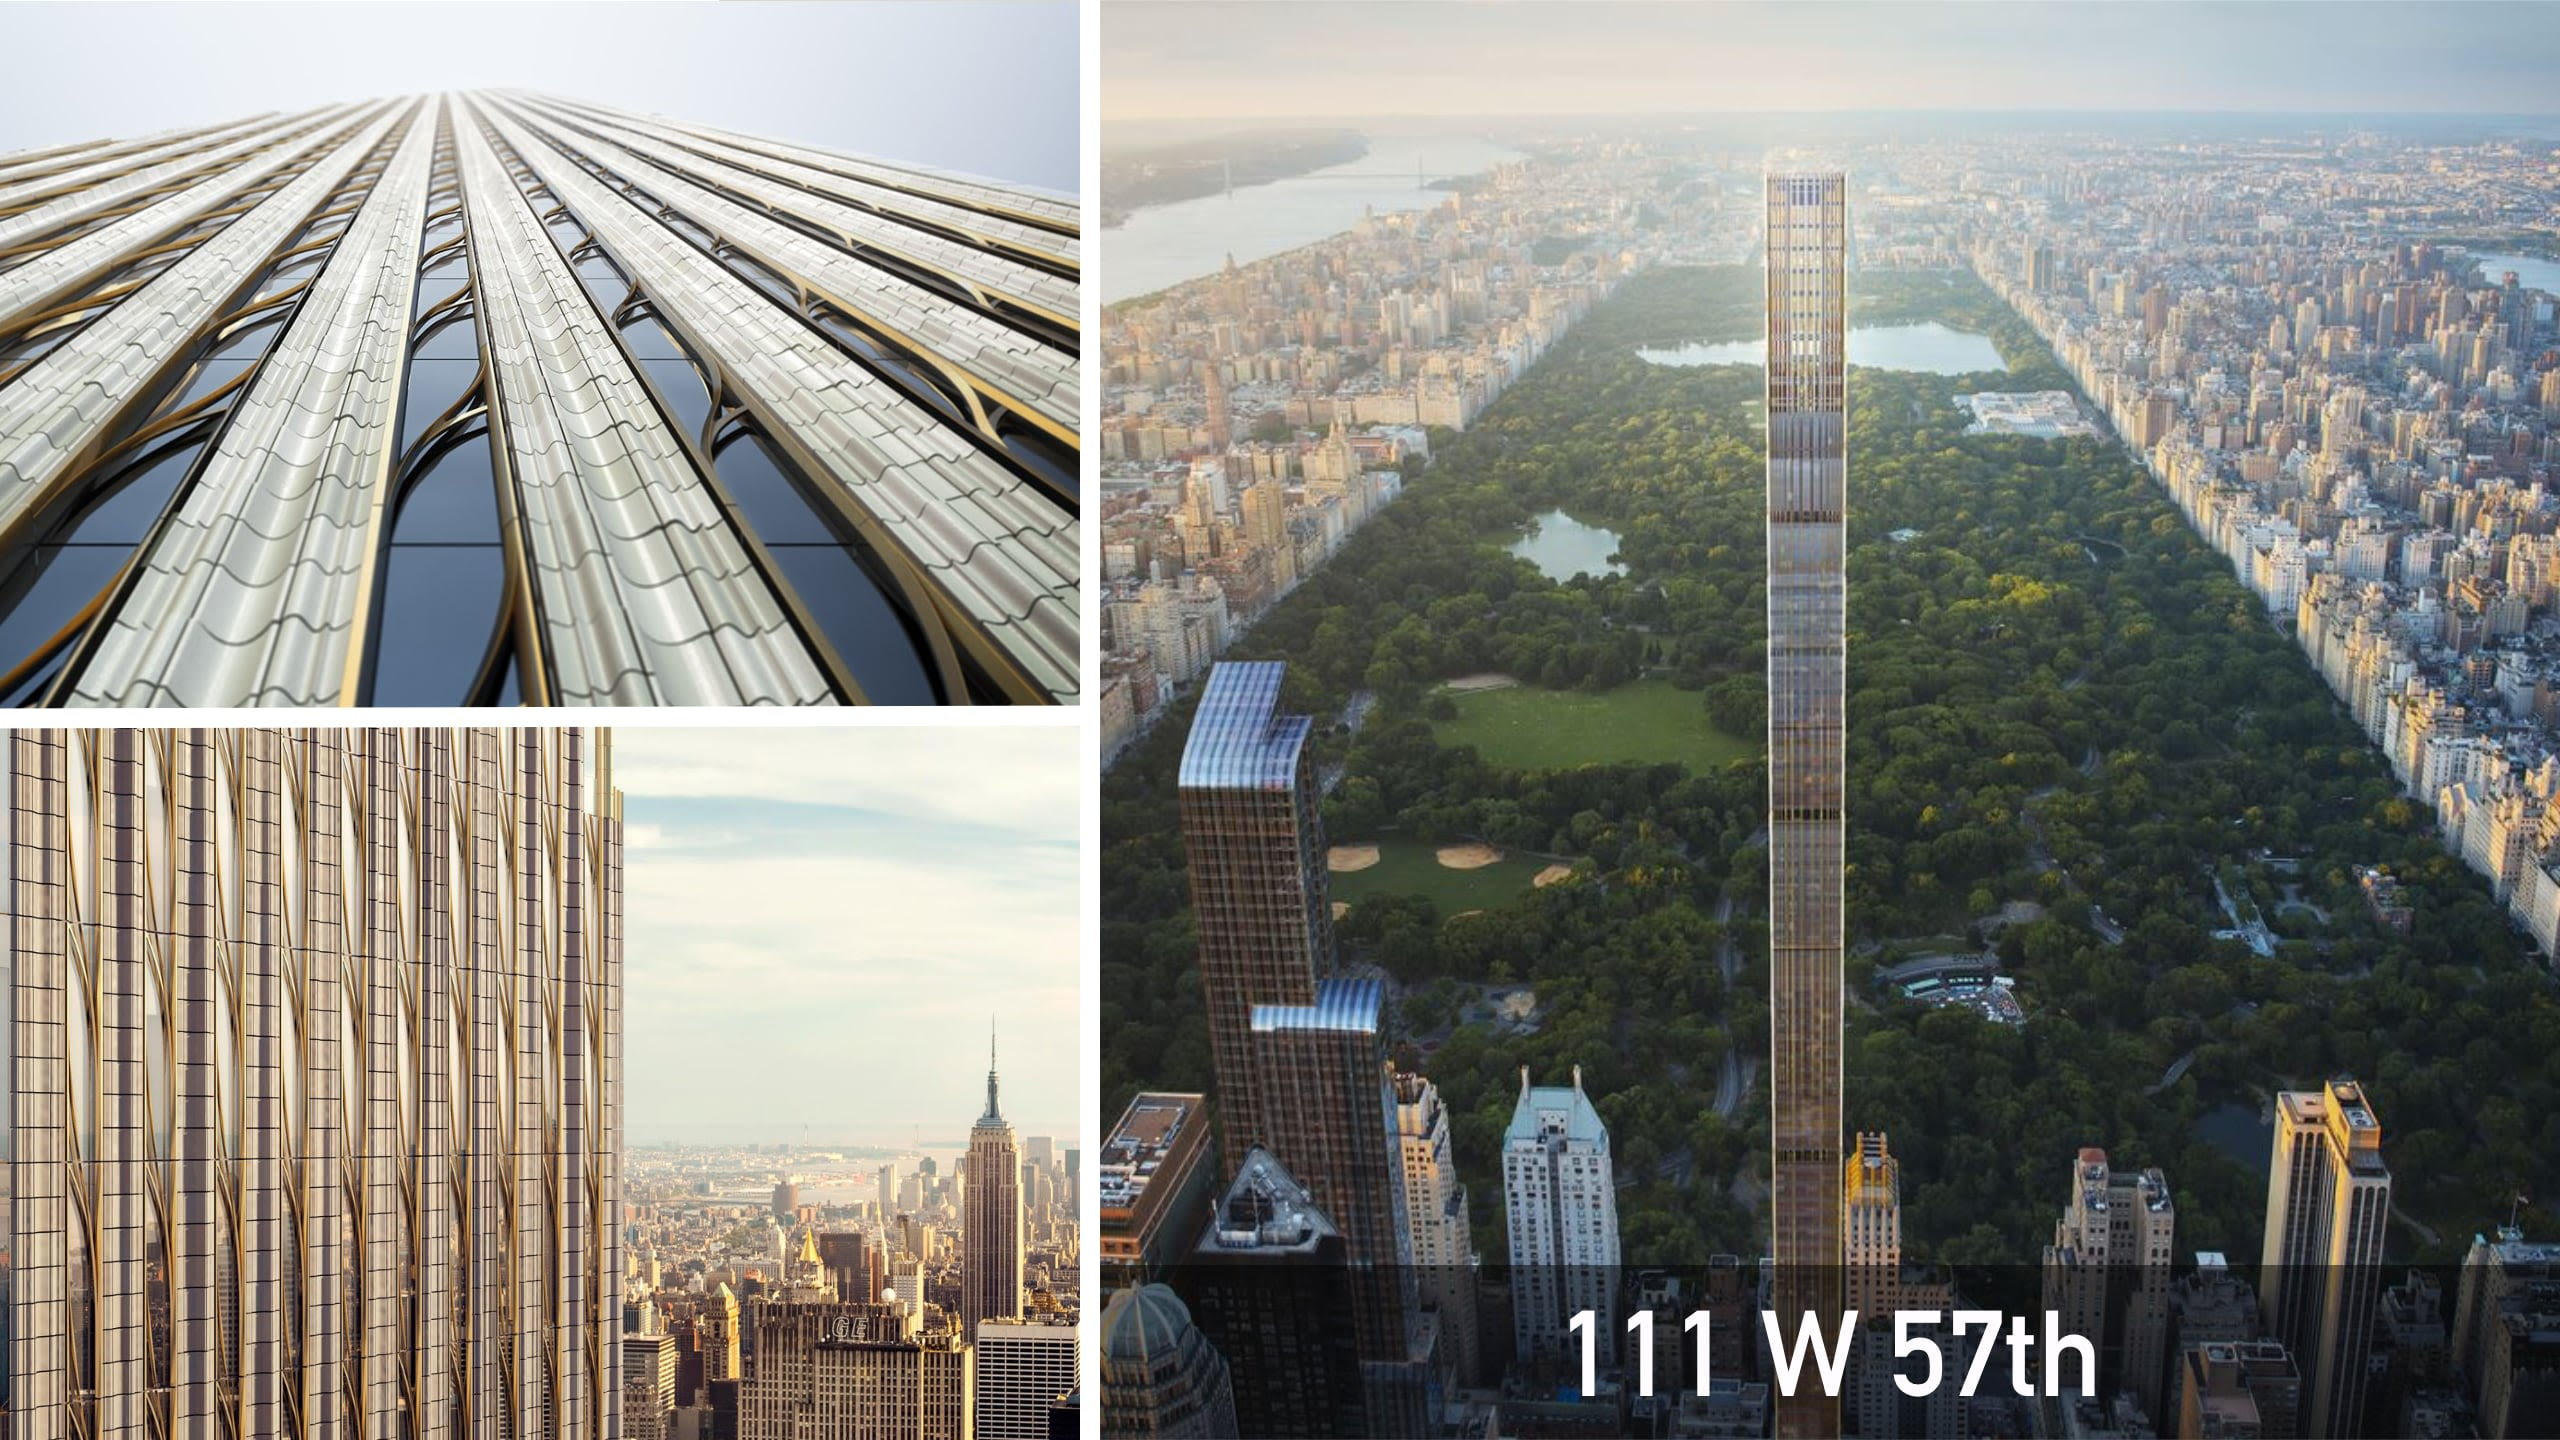 Perfectly centered in the middle of Central Park, 111 West 57th st soon will become the skinniest building in the world.